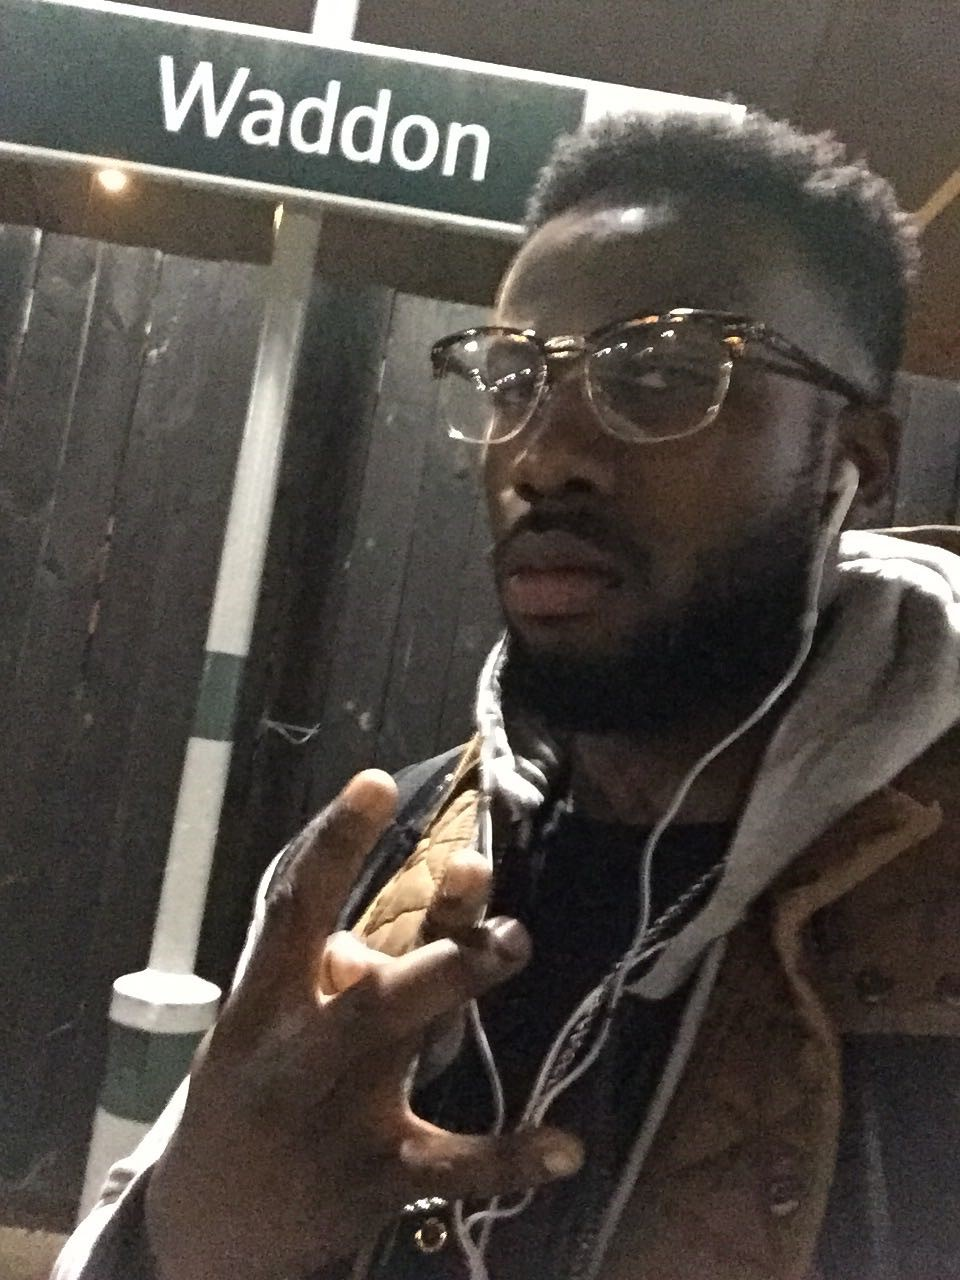 Back in Saaf London: The original bigman fresh off the train in ends getting ready to touch down at yard for fresh pounded yam and egusi soup from the marj <3